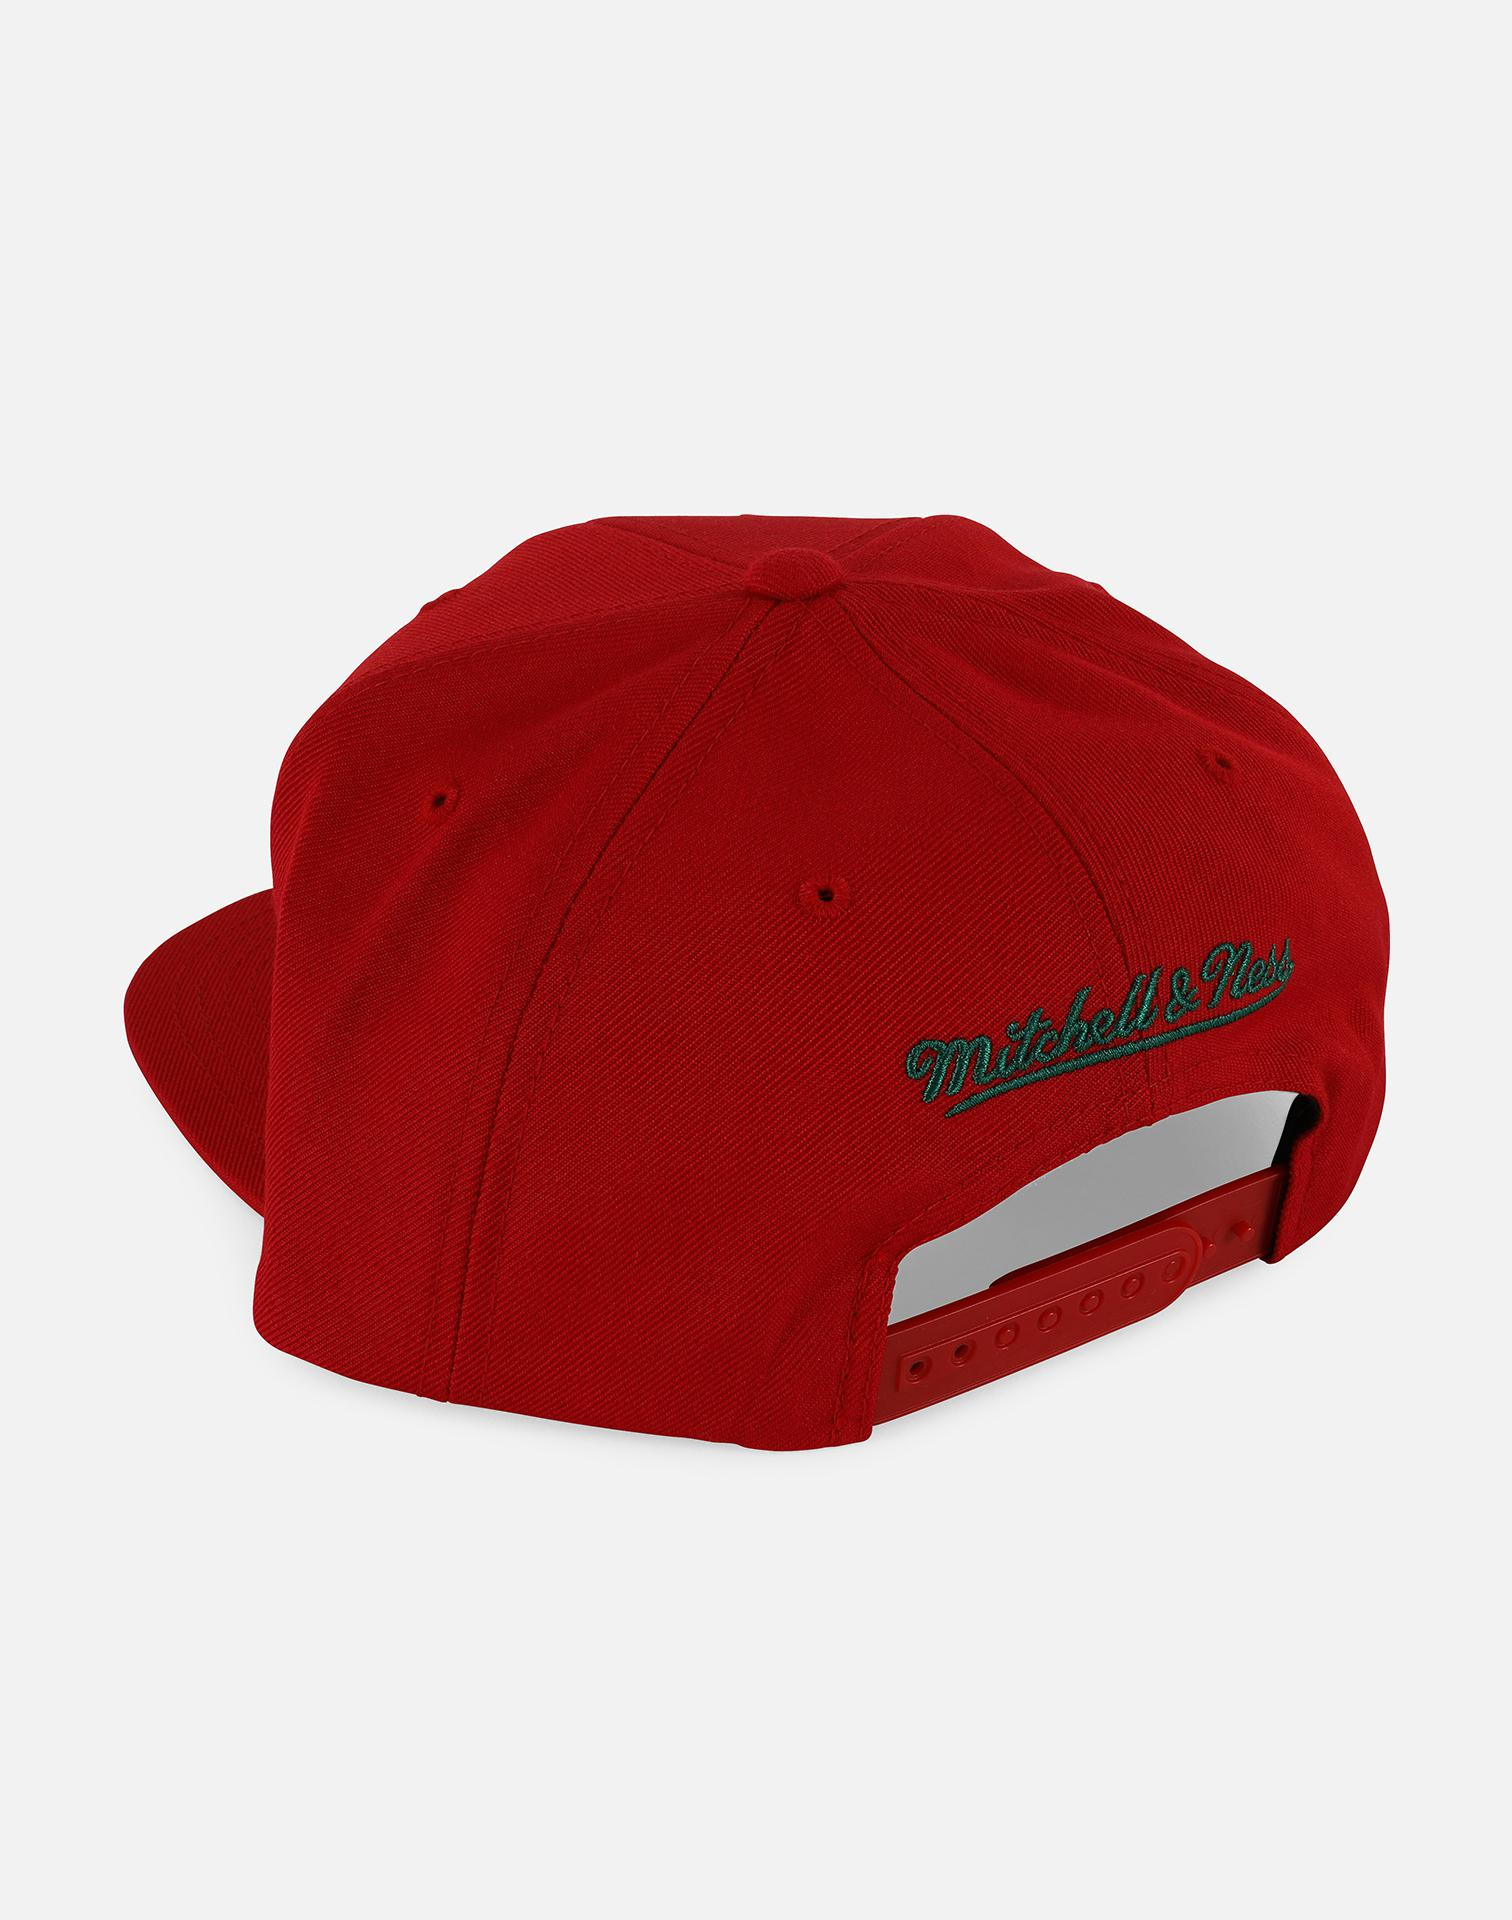 quality design 6fd72 9f0d5 ... canada lyst mitchell ness nba milwaukee bucks wool snapback hat in red  for men 319f1 c9ad0